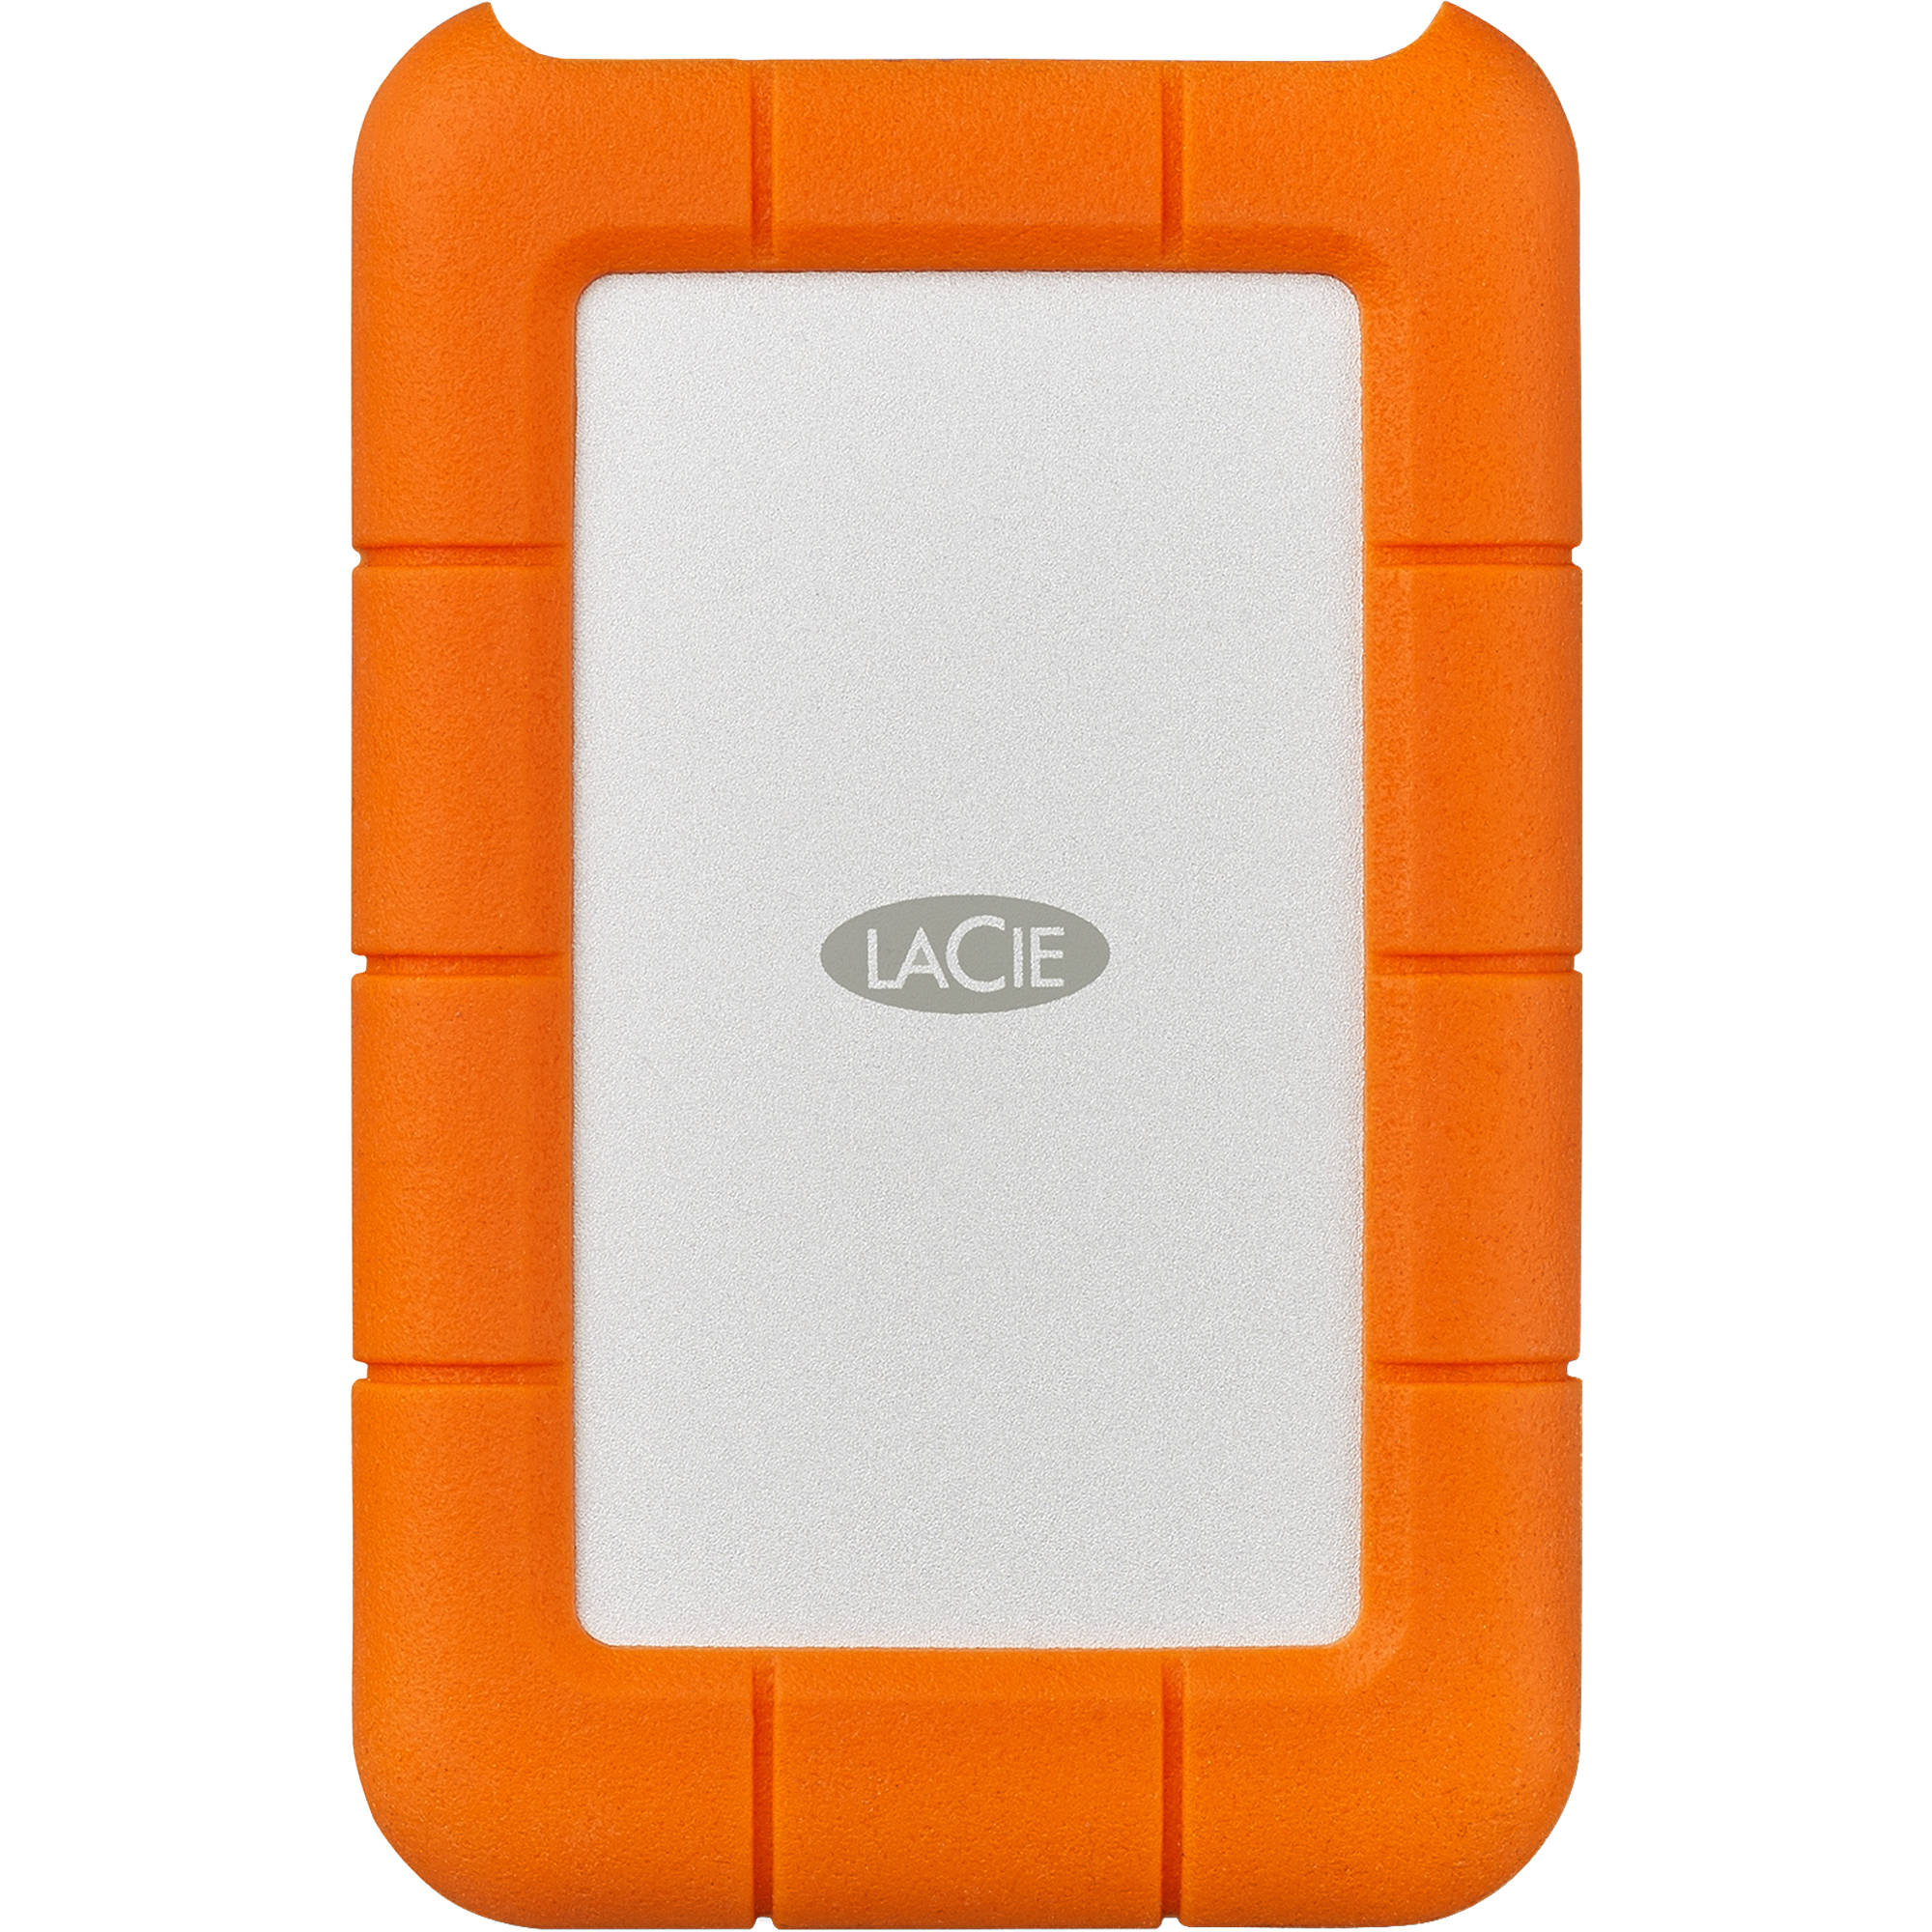 LaCie 1TB Rugged USB 3.0 Type-C External Hard Drive Digital Media LACIE